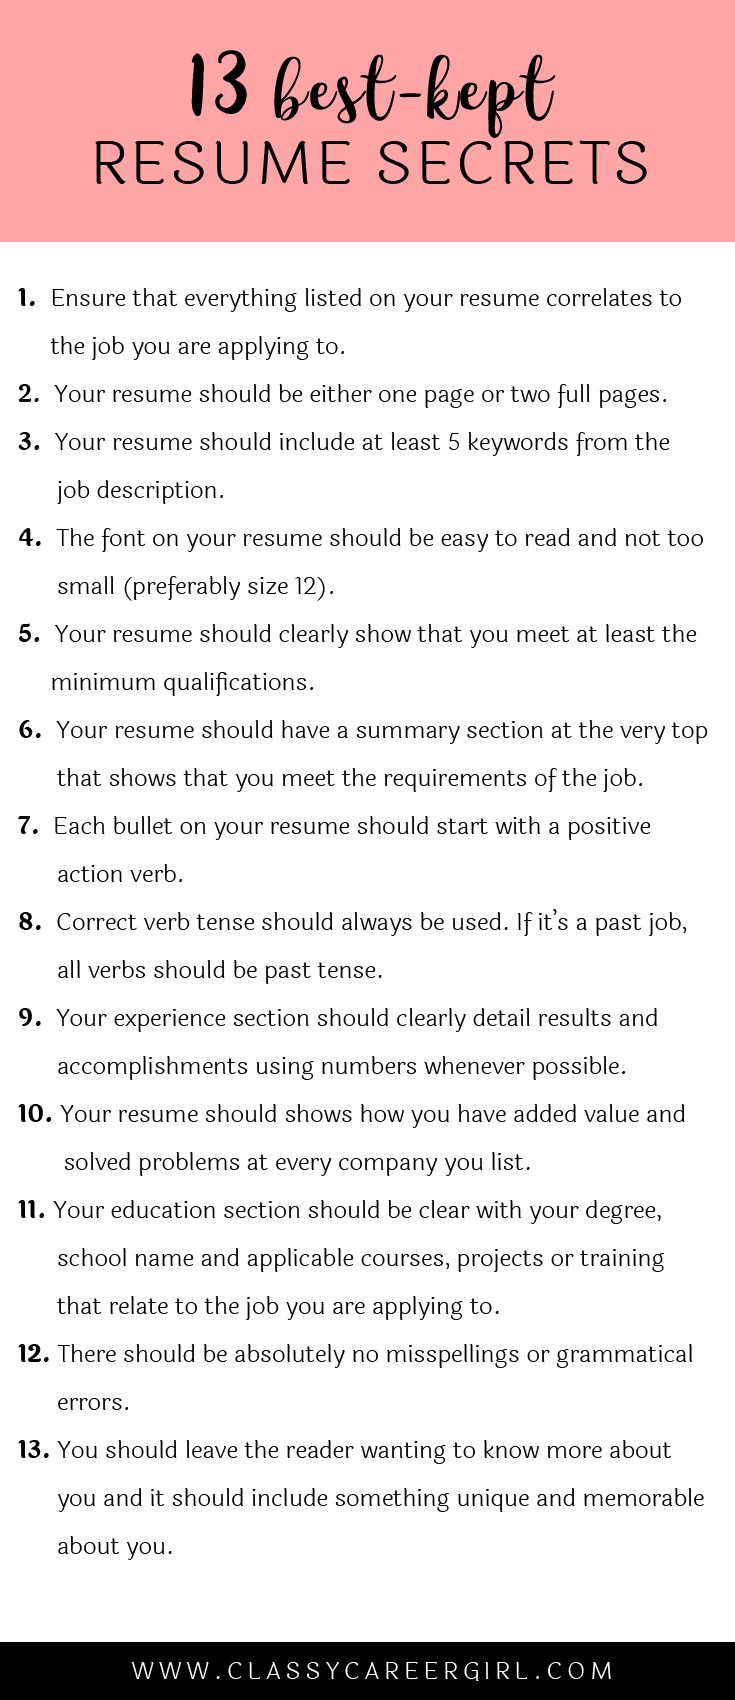 Opposenewapstandardsus  Unique  Ideas About Resume On Pinterest  Cv Format Resume Cv And  With Magnificent Some Hiring Managers Will Toss Your Resume Out If You Dont Know These  With Enchanting Accounting Student Resume Also Warehouse Resume Examples In Addition Strengths To Put On A Resume And Aircraft Mechanic Resume As Well As Marketing Specialist Resume Additionally Personal Interests On Resume From Pinterestcom With Opposenewapstandardsus  Magnificent  Ideas About Resume On Pinterest  Cv Format Resume Cv And  With Enchanting Some Hiring Managers Will Toss Your Resume Out If You Dont Know These  And Unique Accounting Student Resume Also Warehouse Resume Examples In Addition Strengths To Put On A Resume From Pinterestcom